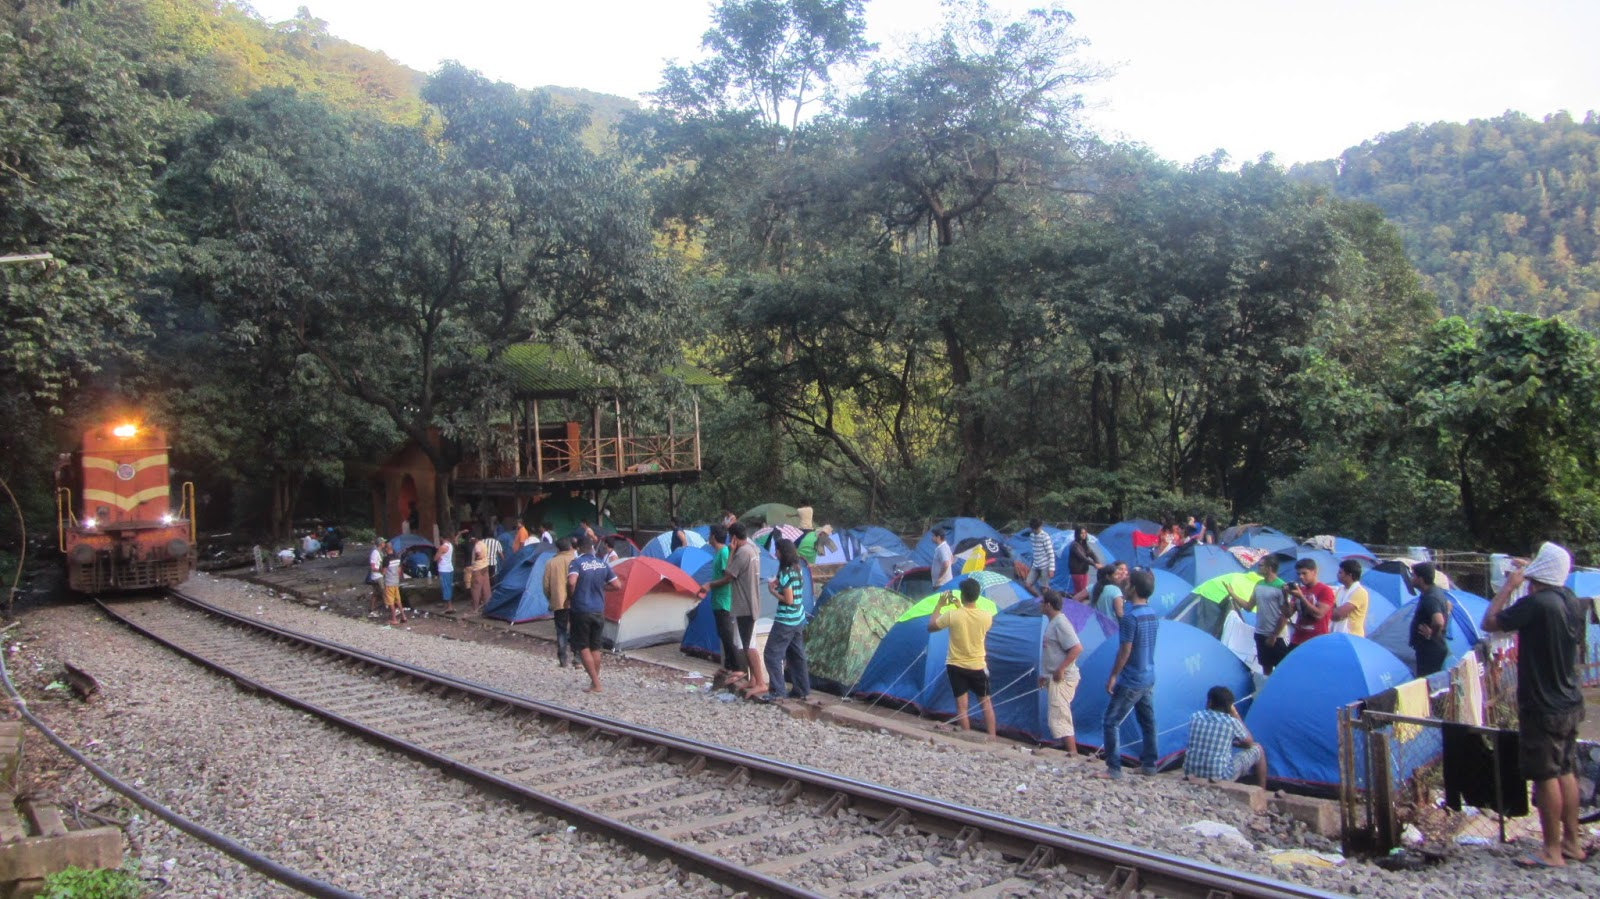 Camping area across the railway track, Dudhsagar Falls Image Credit: thetravelreminiscences